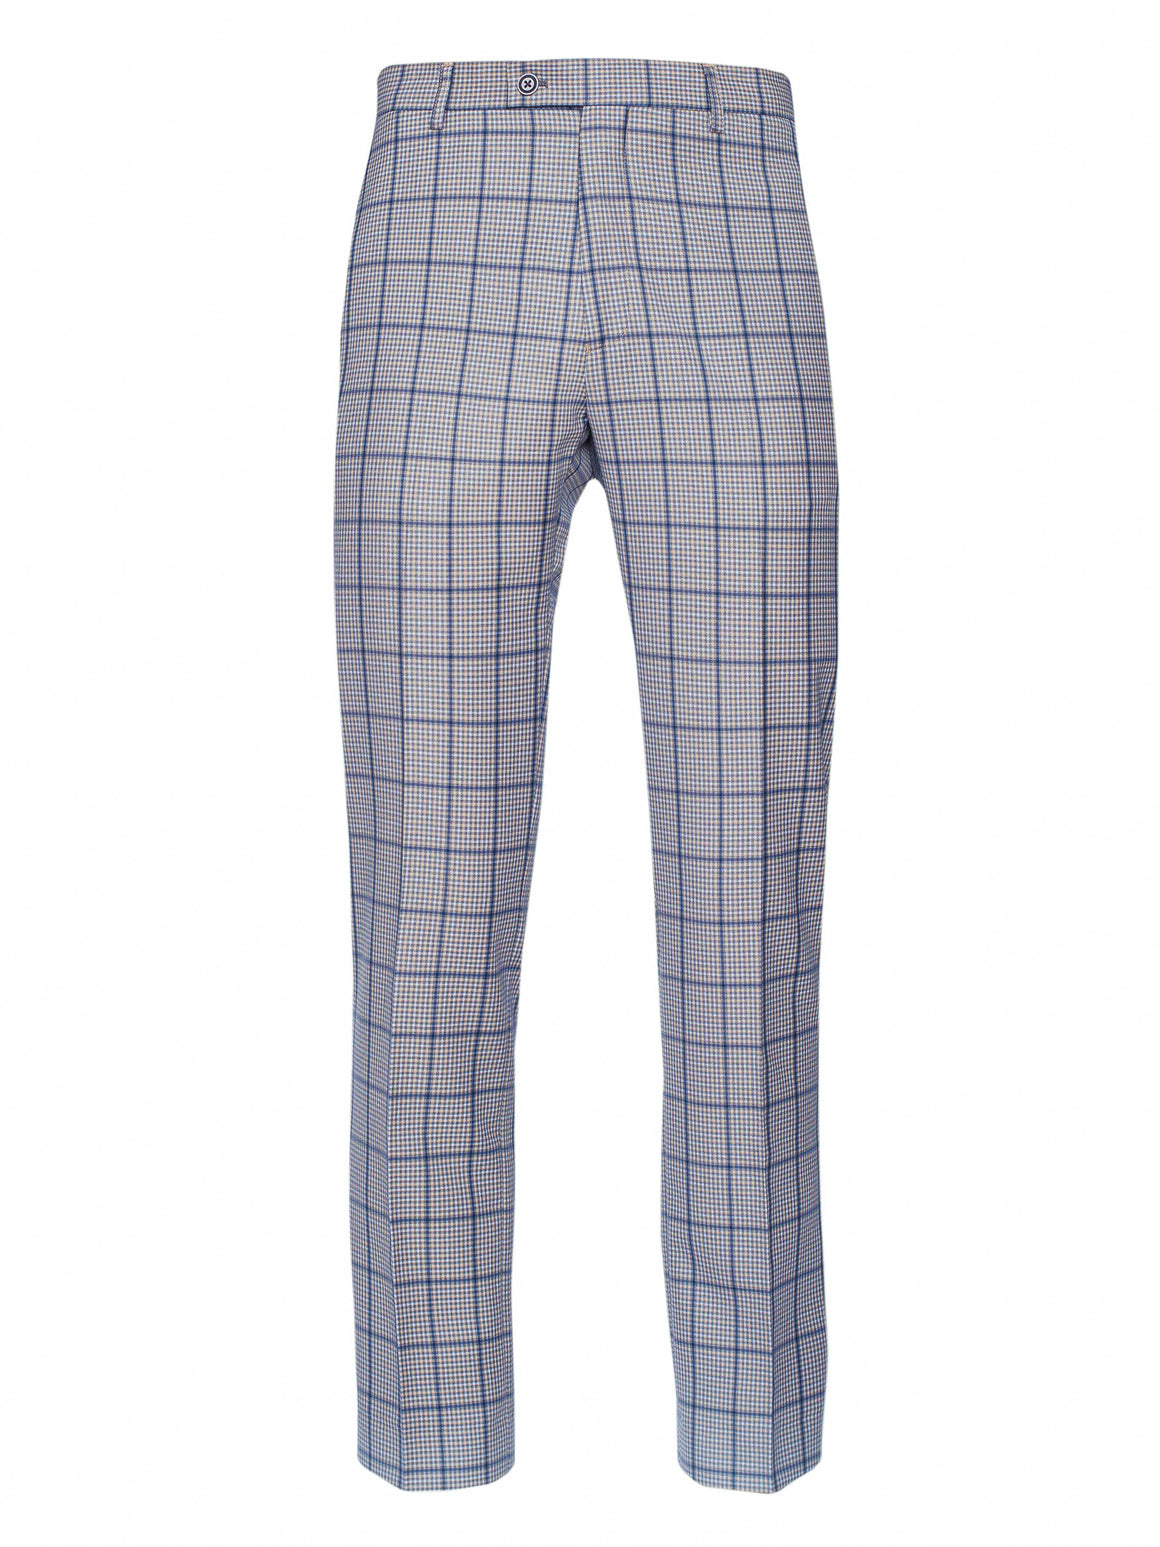 Downing Pants - Slim - Grey Plaid